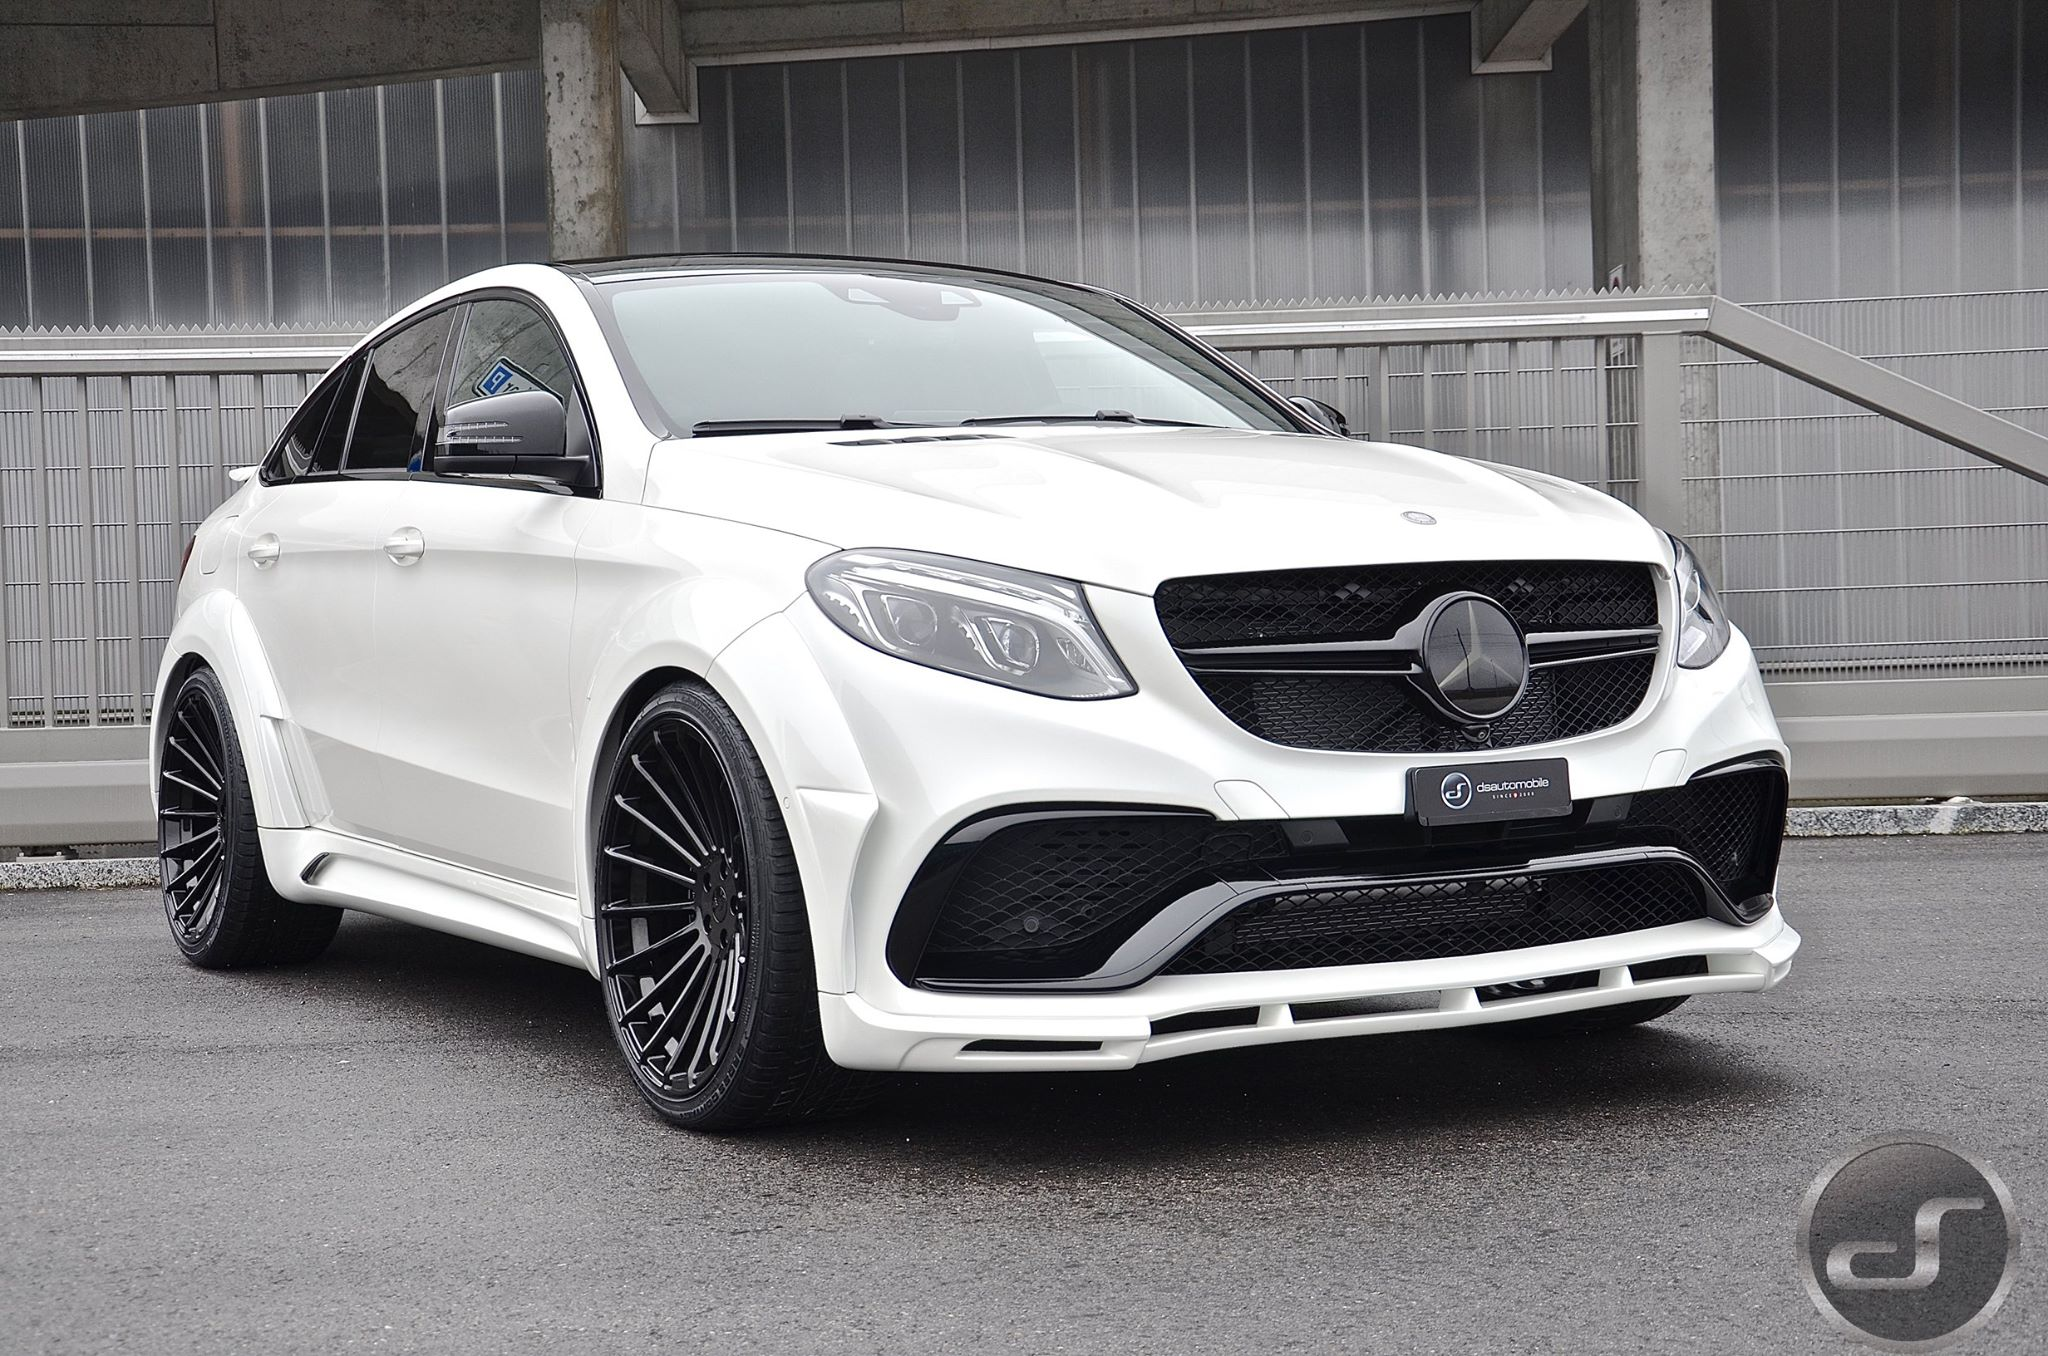 polar white mercedes gle 450 amg coupe spotted undisguised in germany autoevolution. Black Bedroom Furniture Sets. Home Design Ideas